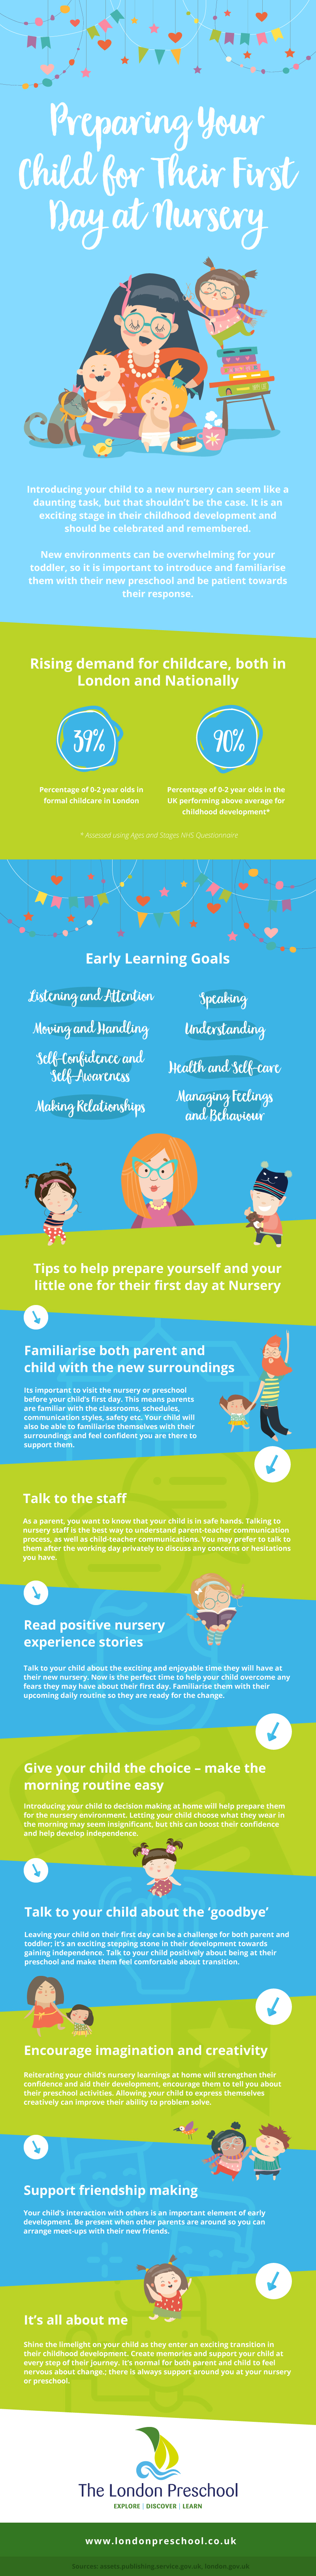 London Preschool & Nursery